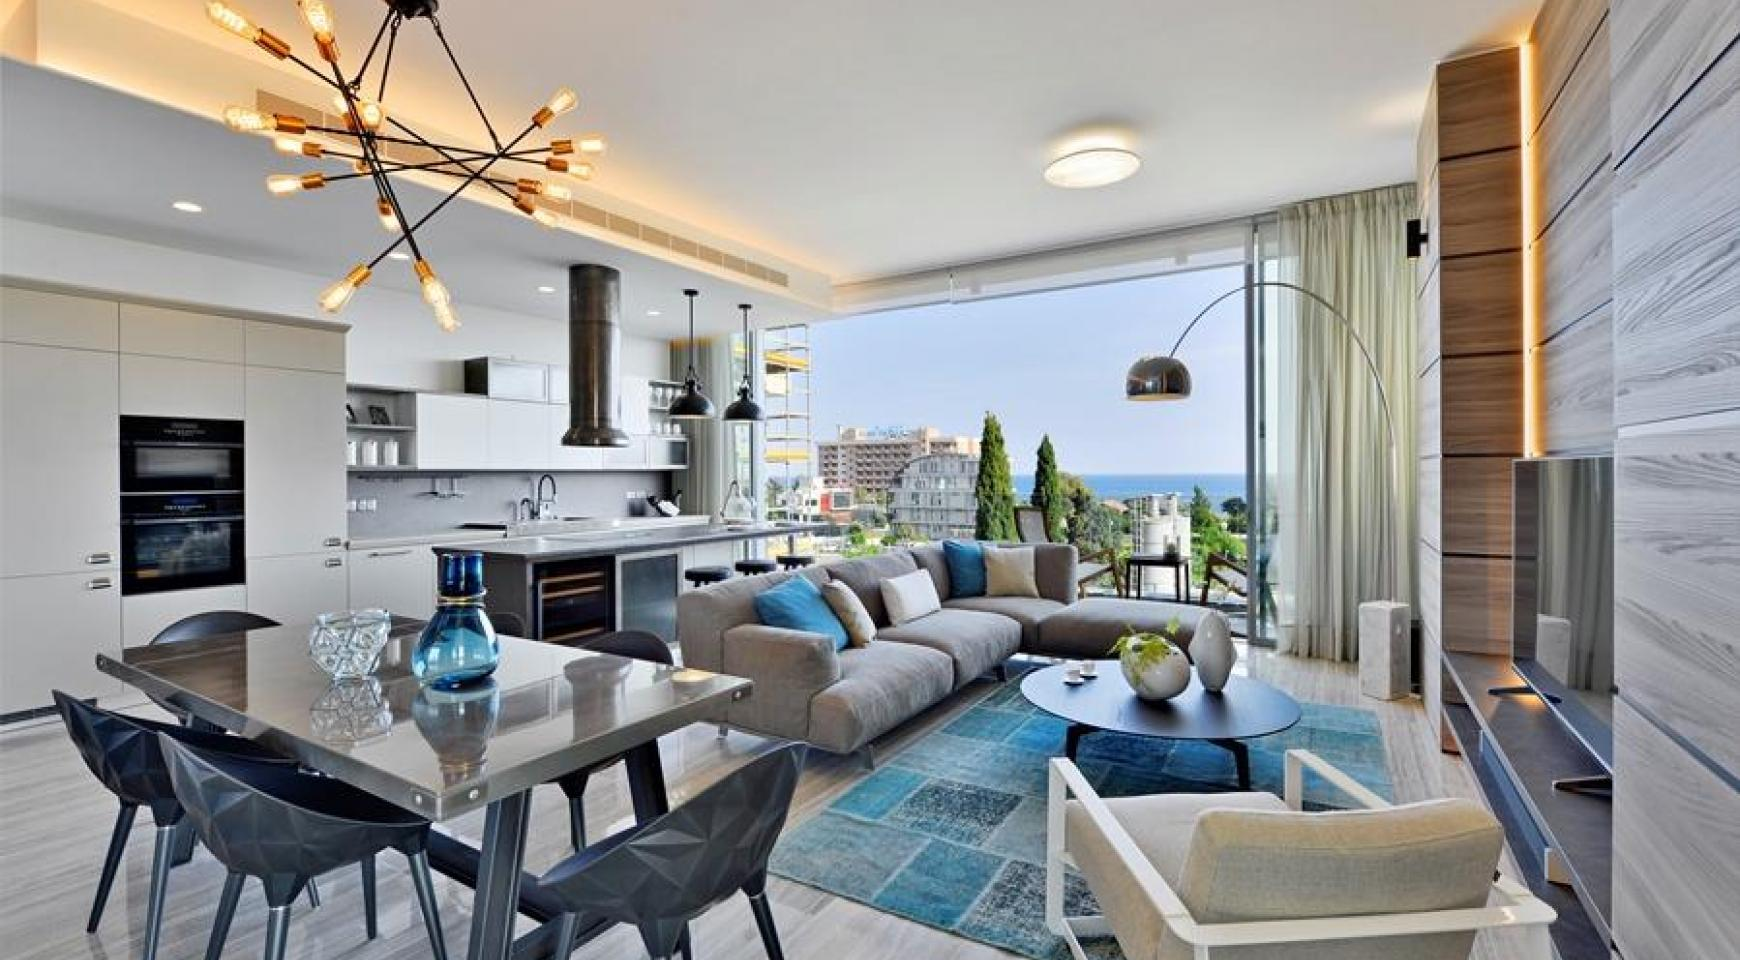 Luxurious 3 Bedroom Penthouse with Private Roof Garden near the Sea - 1